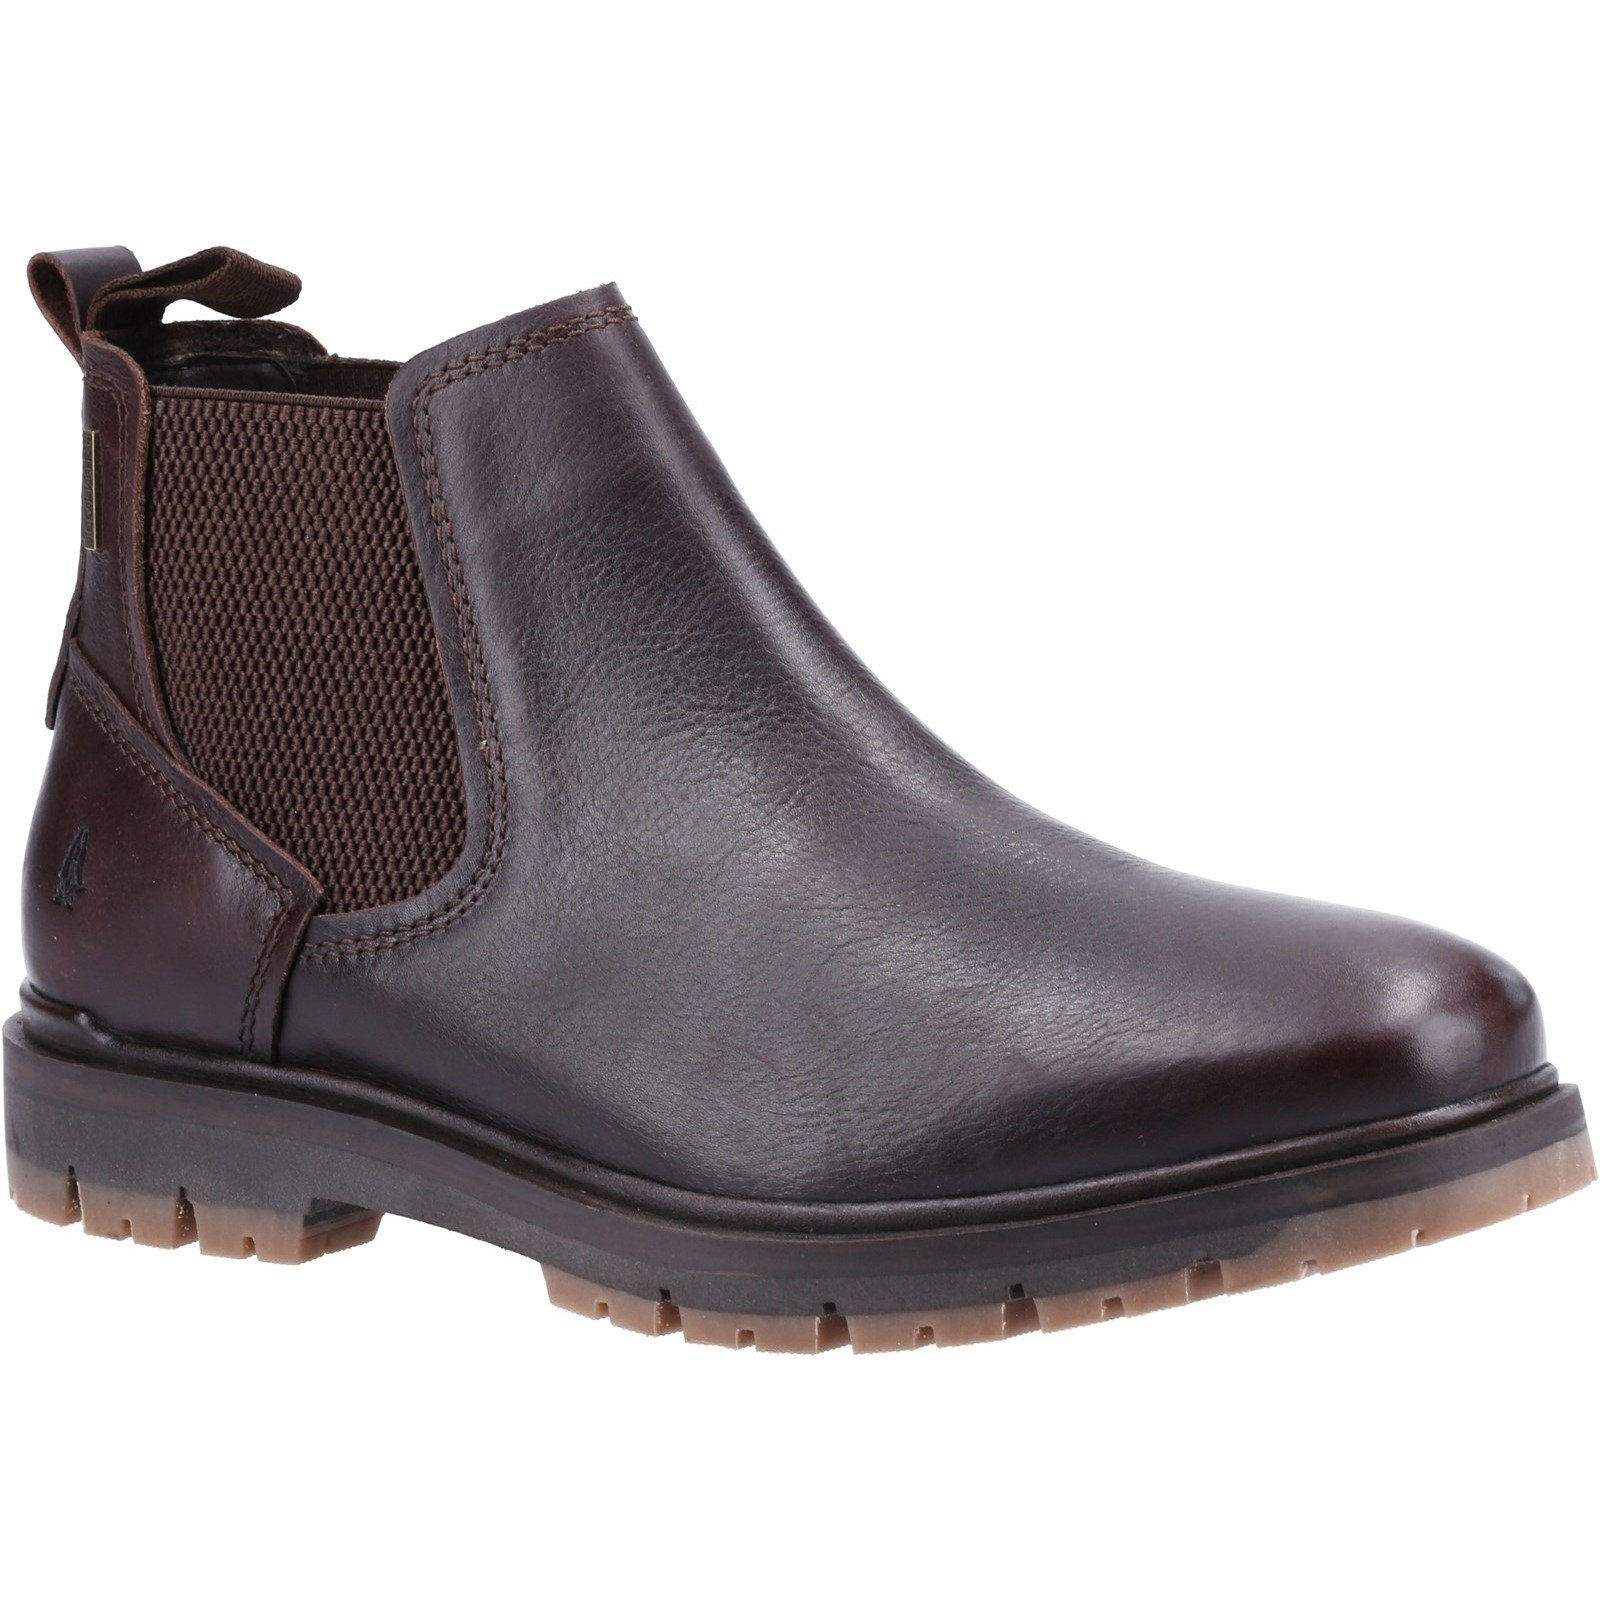 Hush Puppies Men's Paxton Chelsea Boot Various Colours 32882 - Brown 6